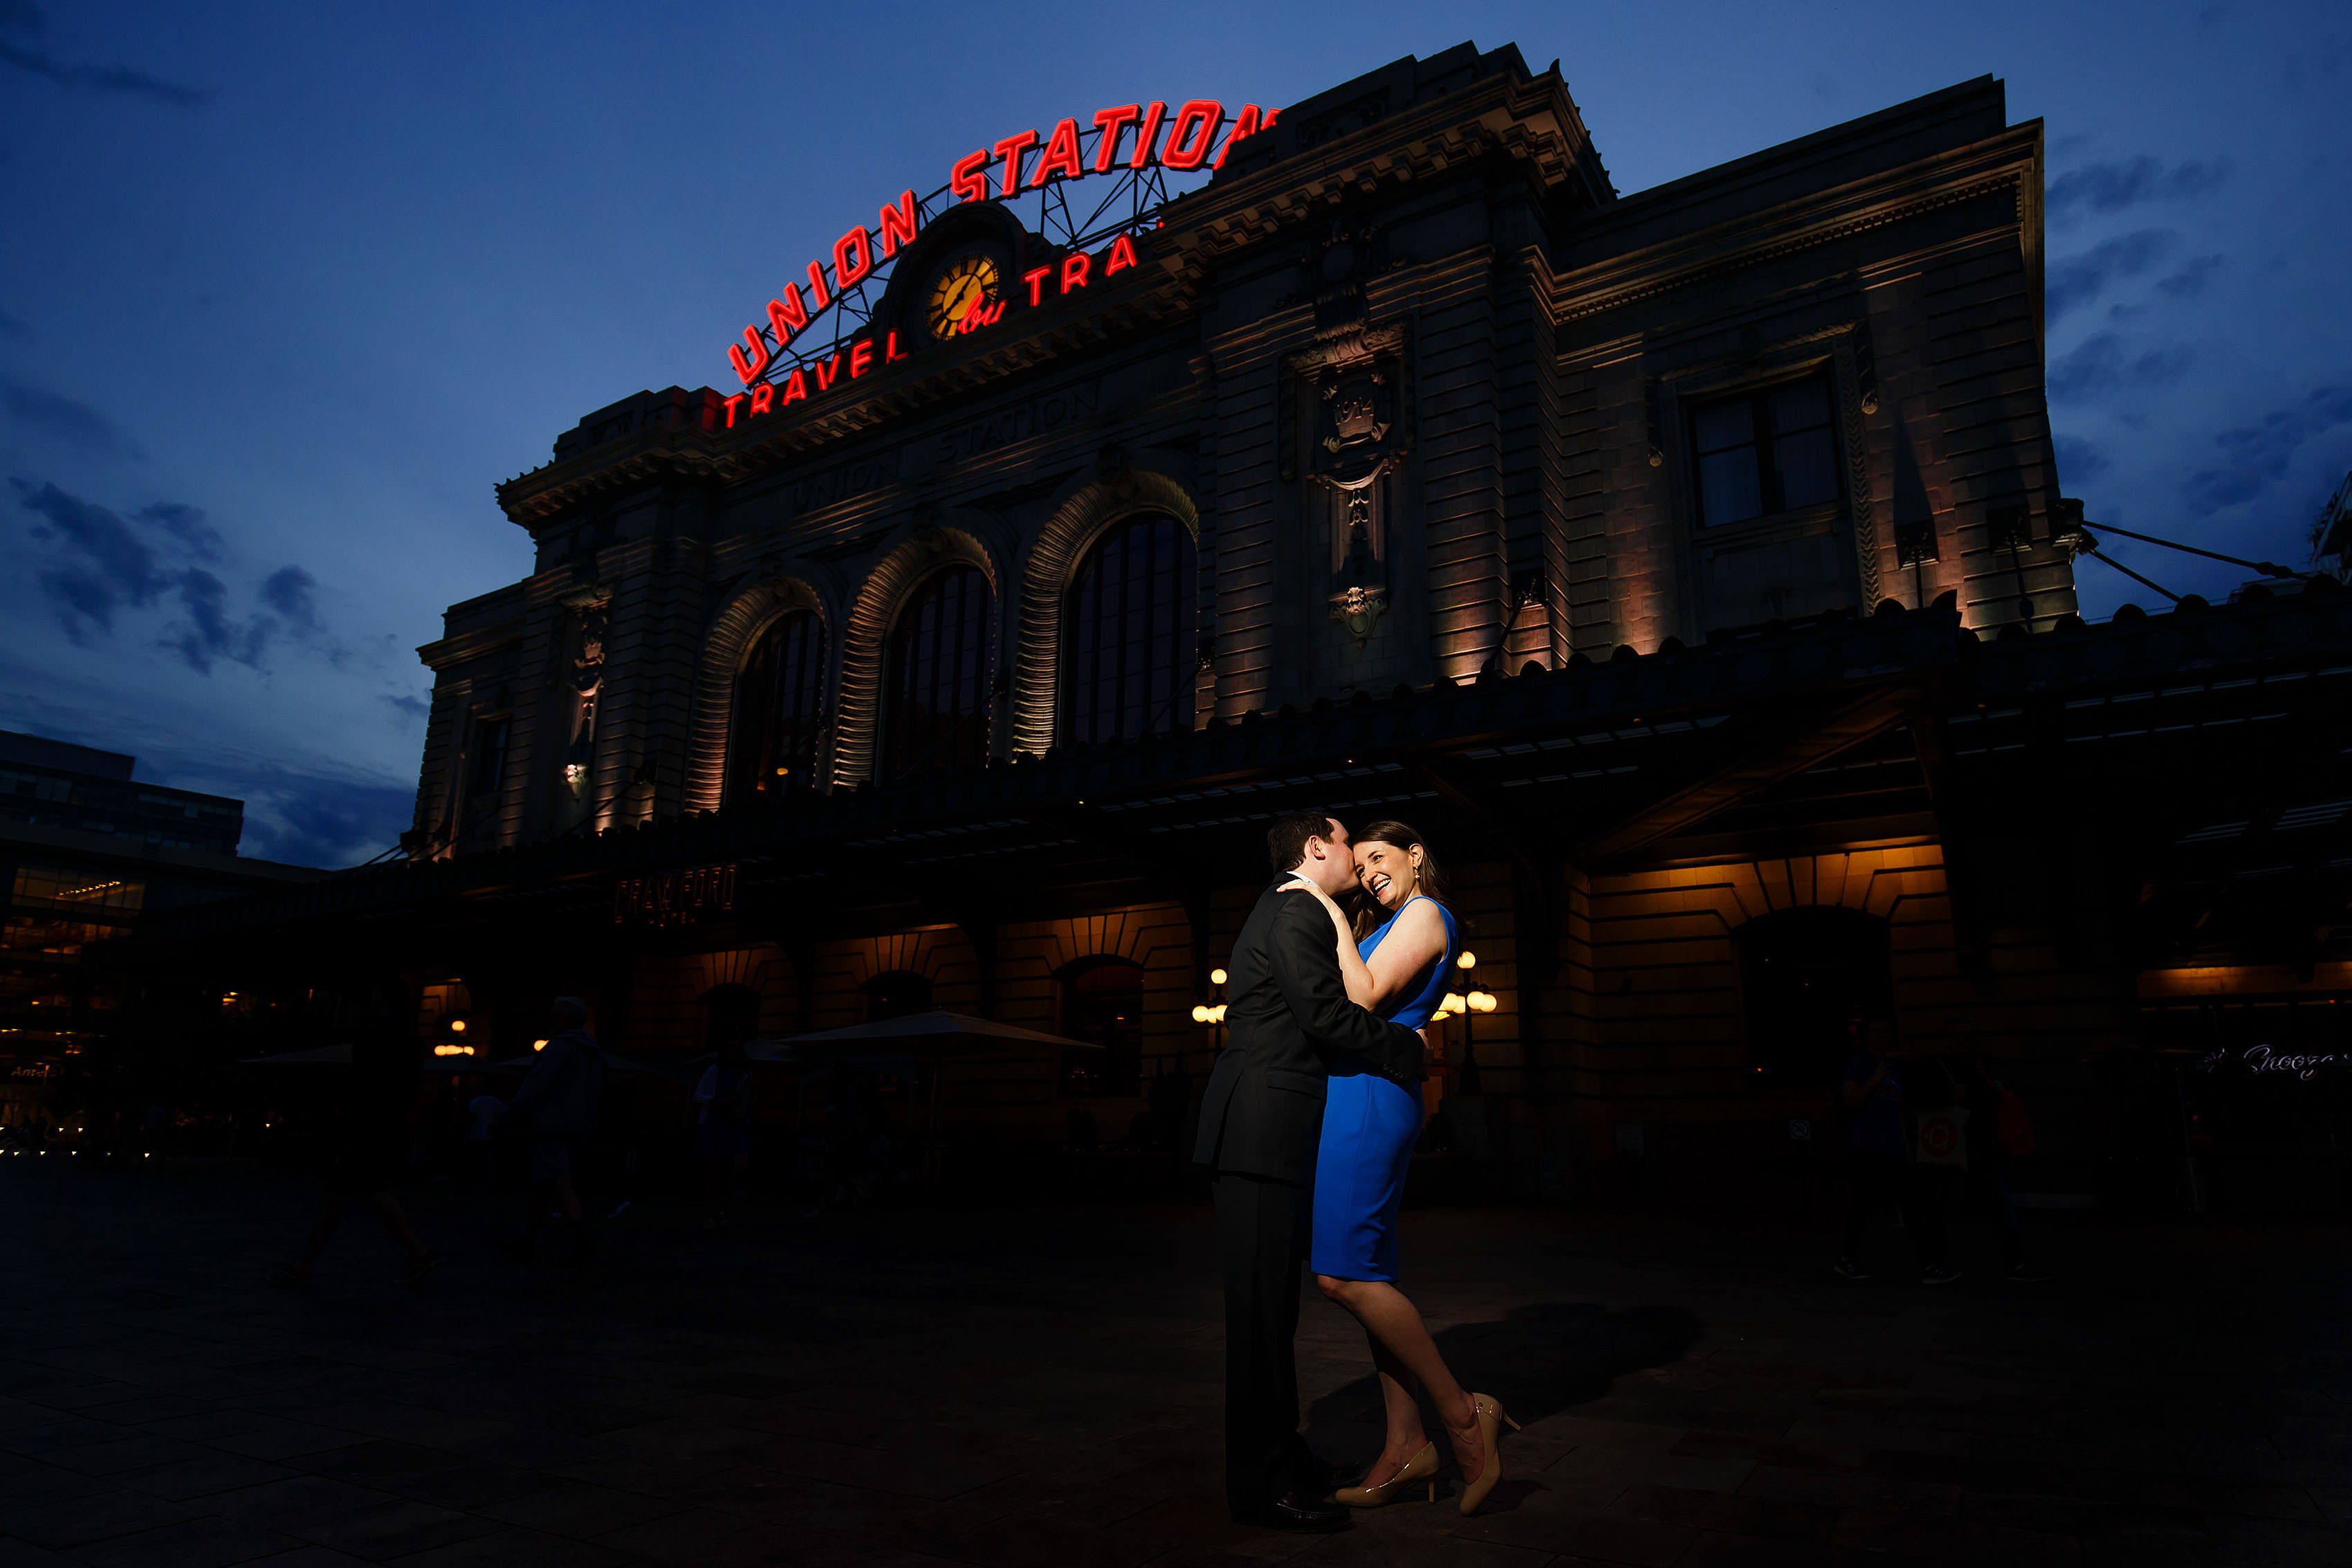 Joel kisses Katie in front of Denver's Union Station during their engagement photos during twilight